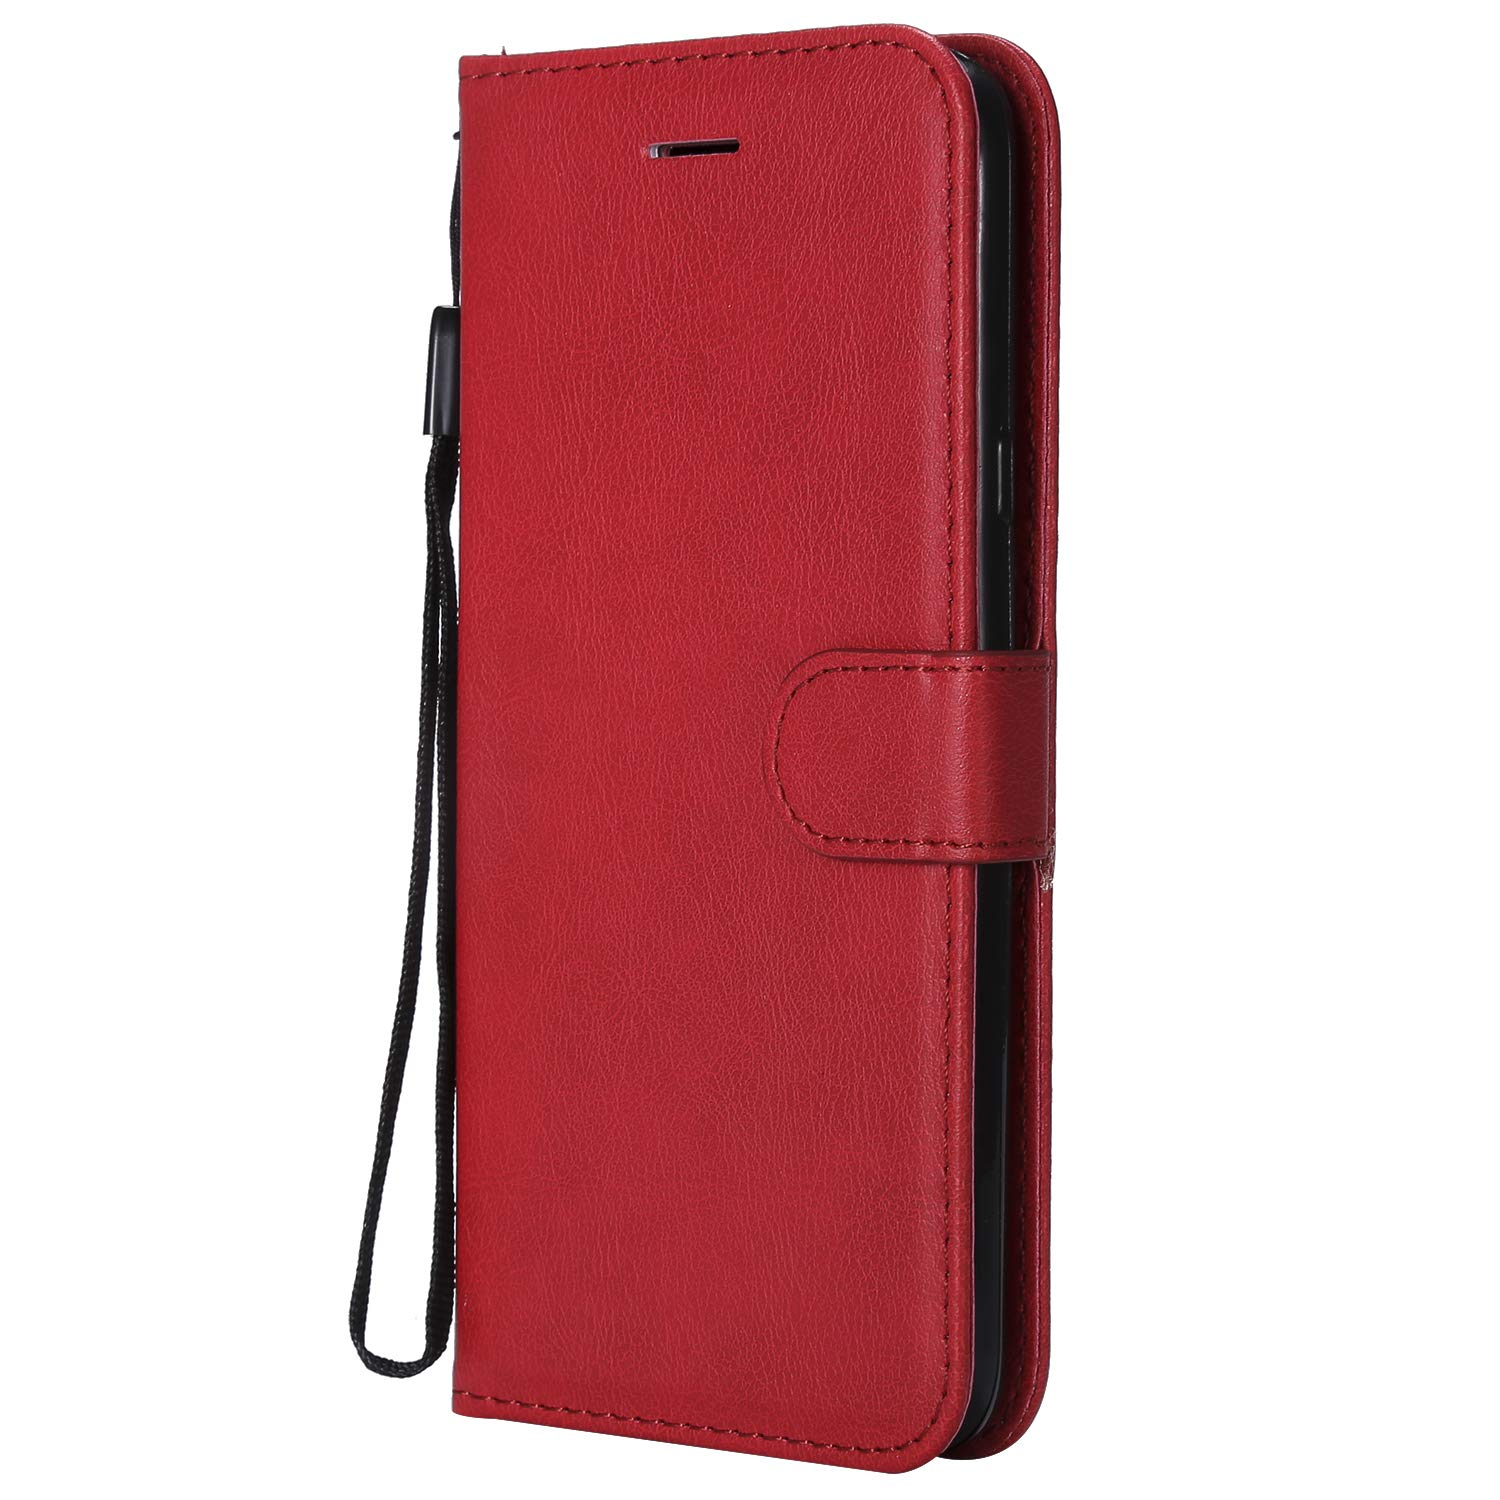 Galaxy J7 Duo Case, AIIYG DS Classic Pure Color [Kickstand Feature] Flip Folio Leather Wallet Case with ID and Credit Card Pockets for Samsung Galaxy J7 Duo 2018 Red